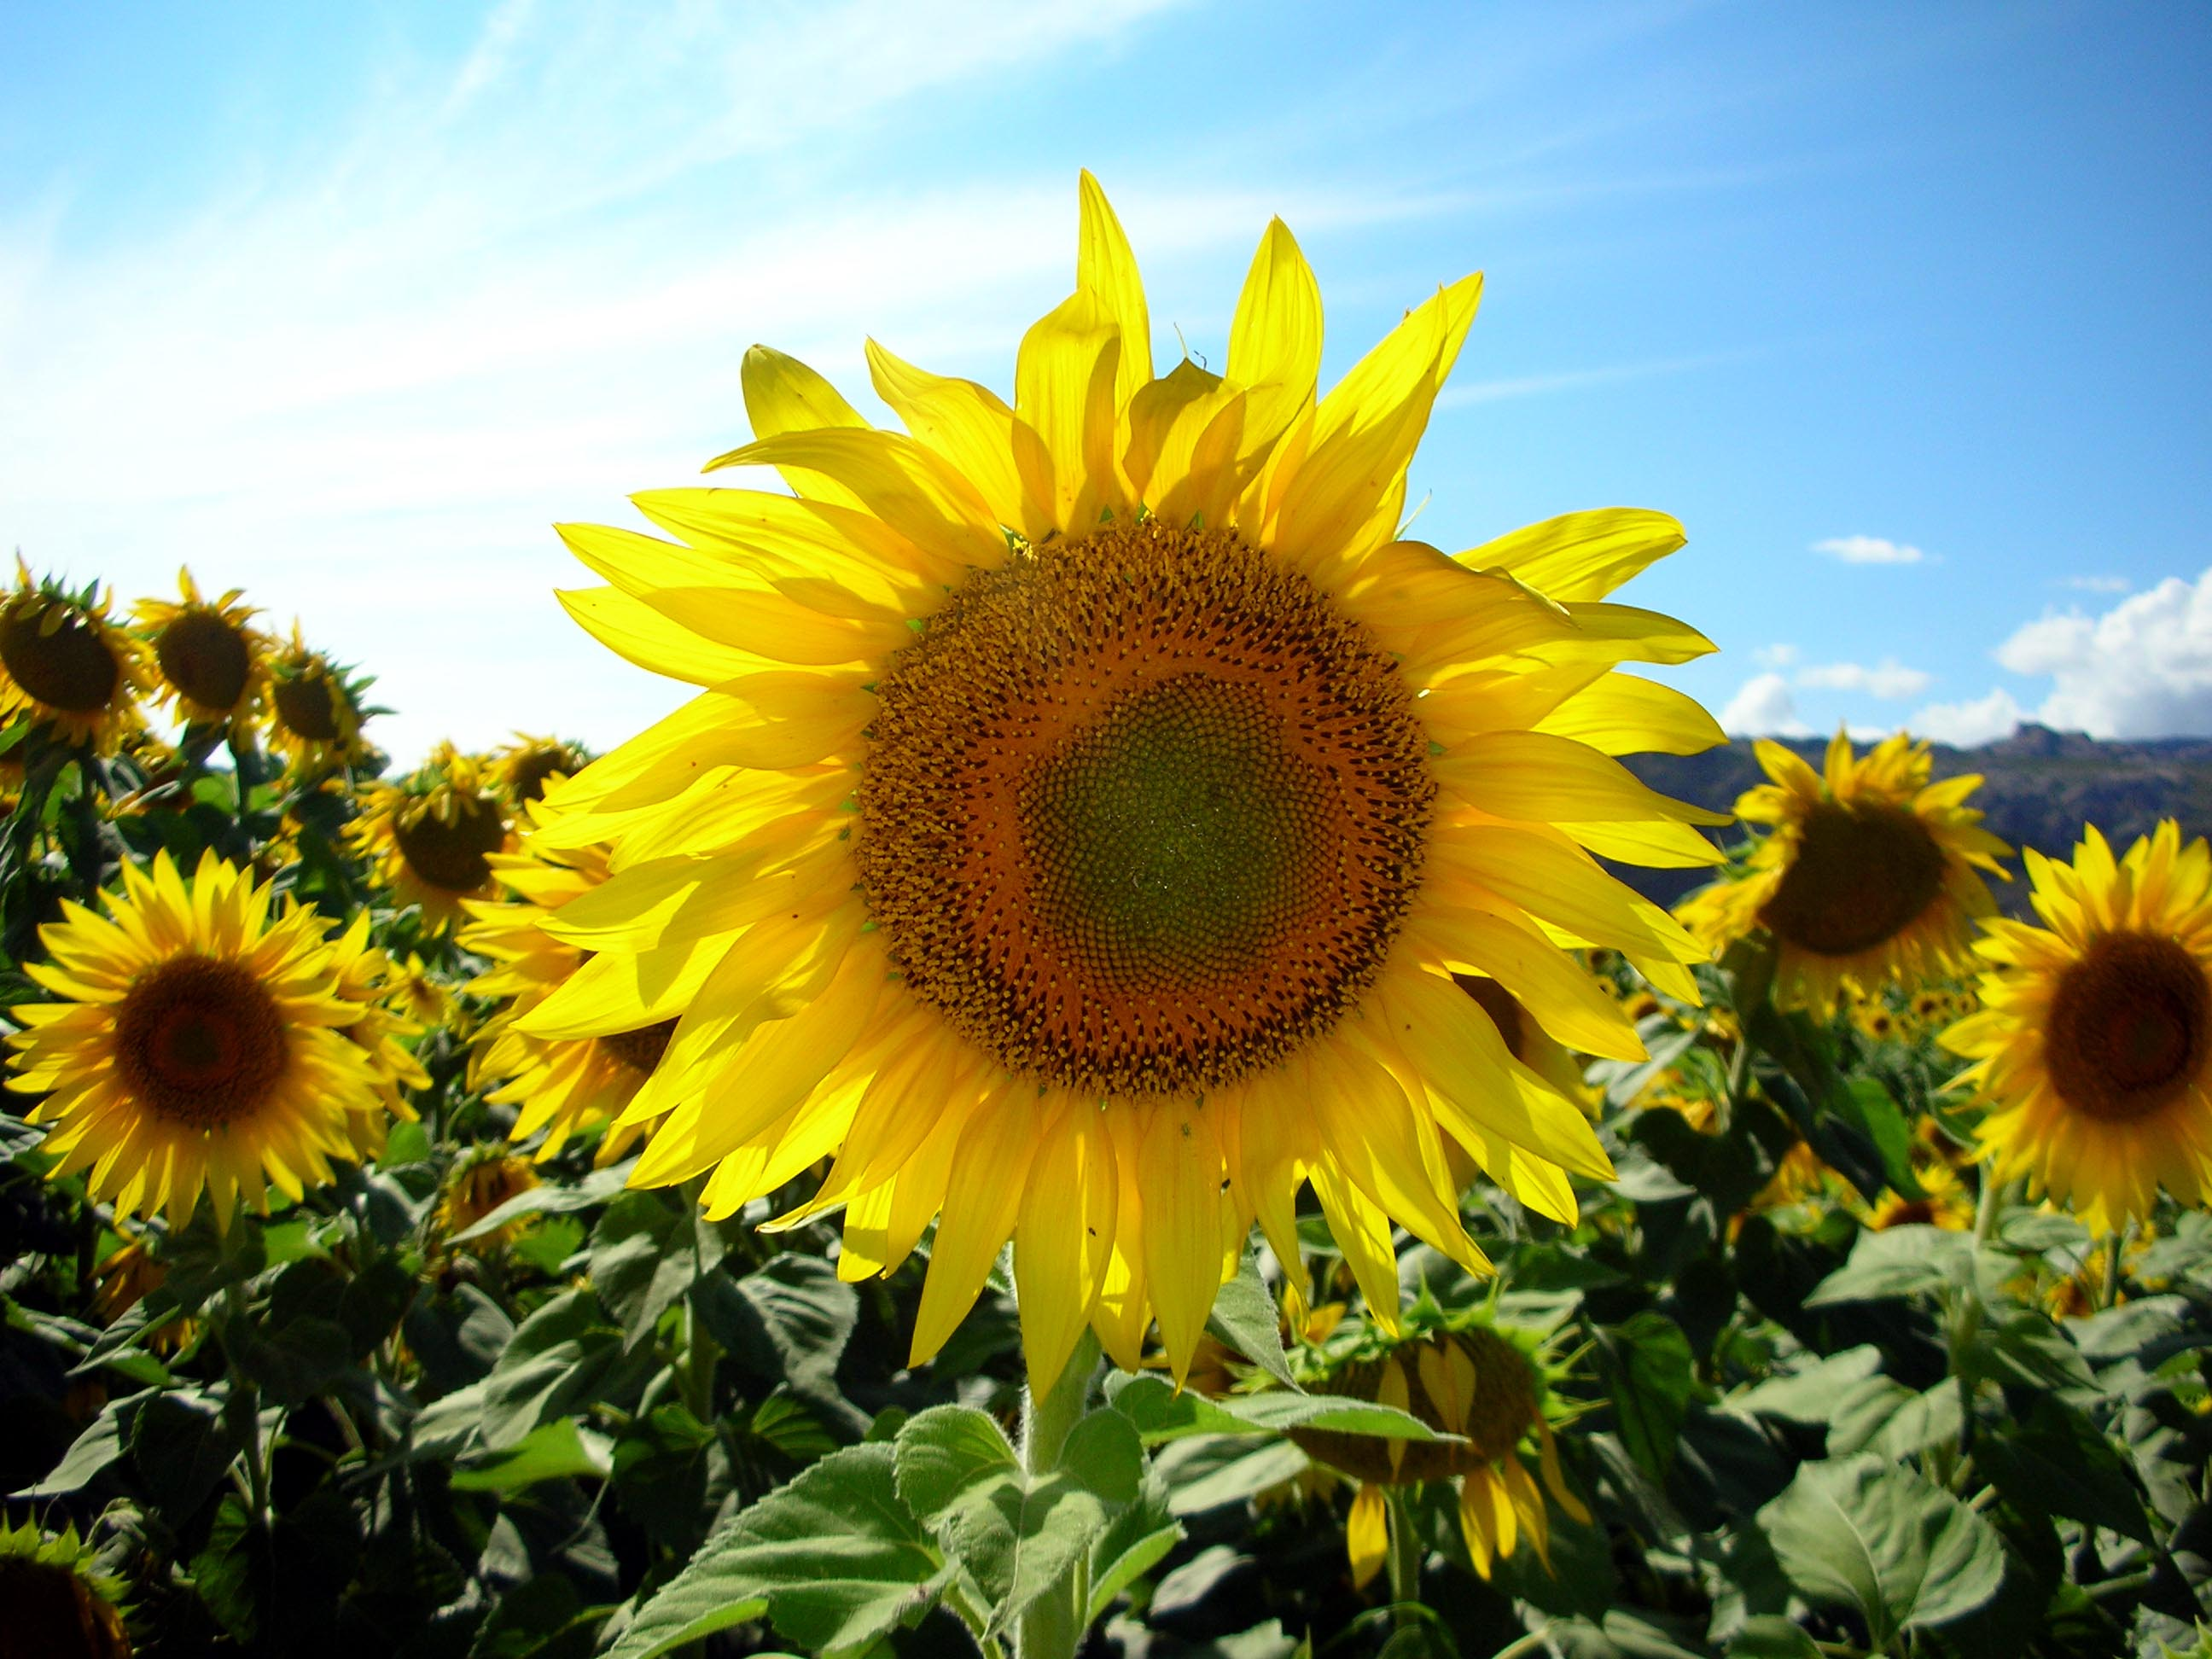 Sunflower power! It's true... sunflowers are the most photogenic object on earth, and there were lots of 'em around Hongqi.